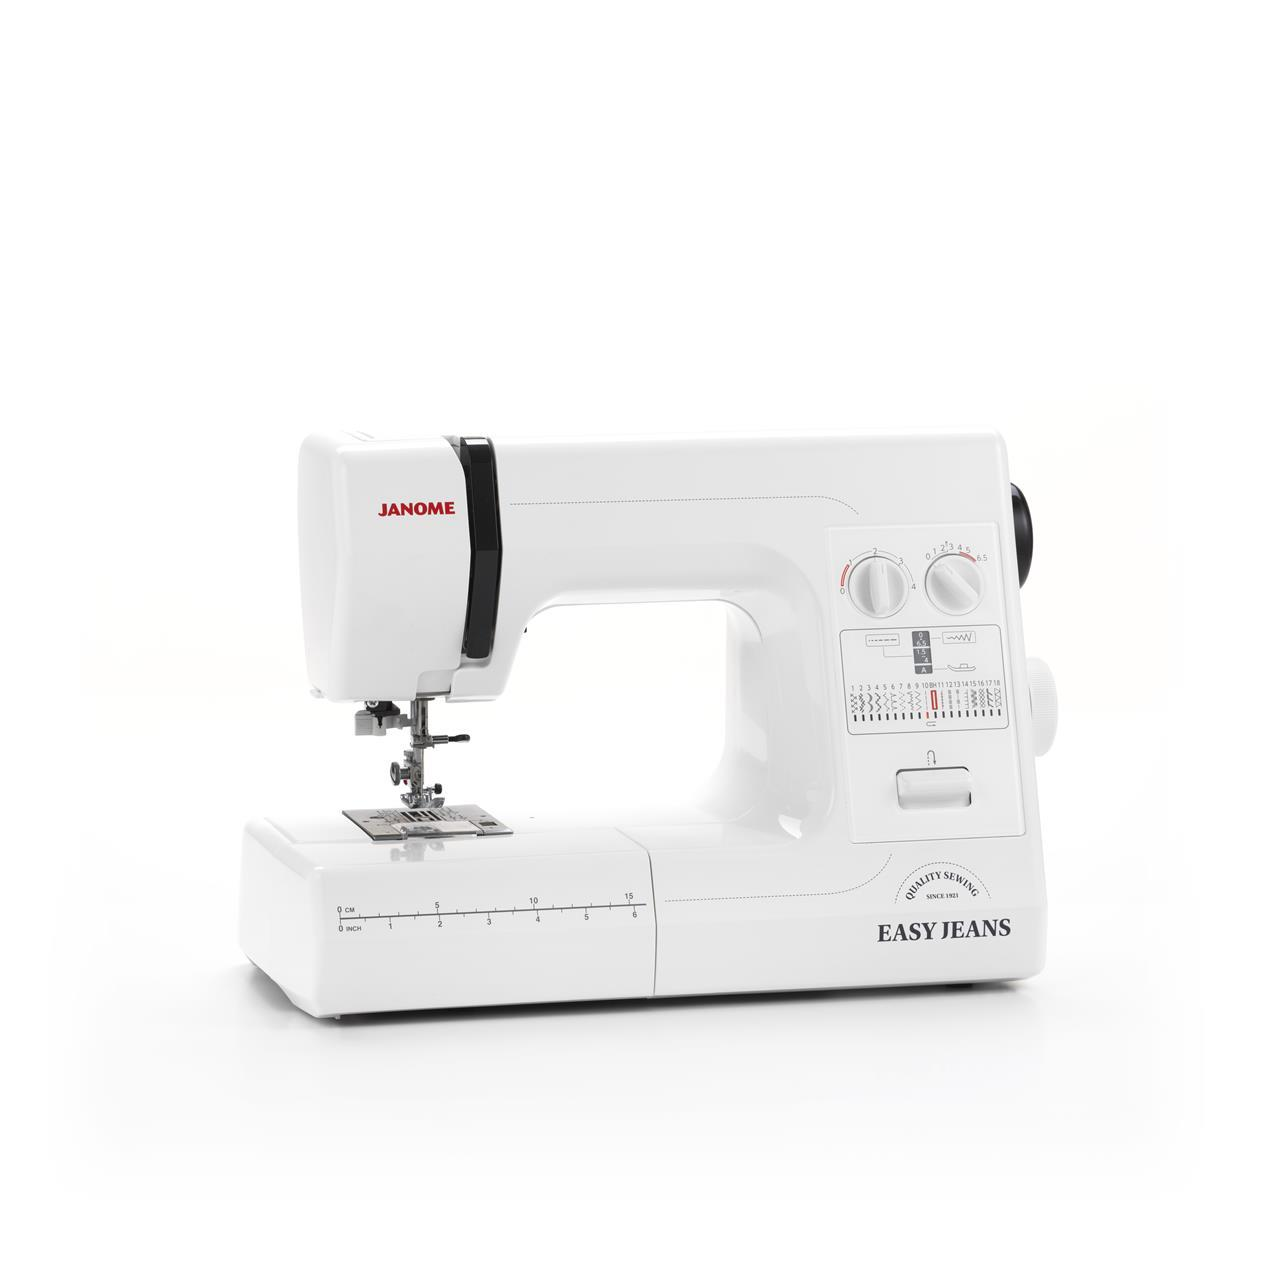 Janome: Easy jeans 1800